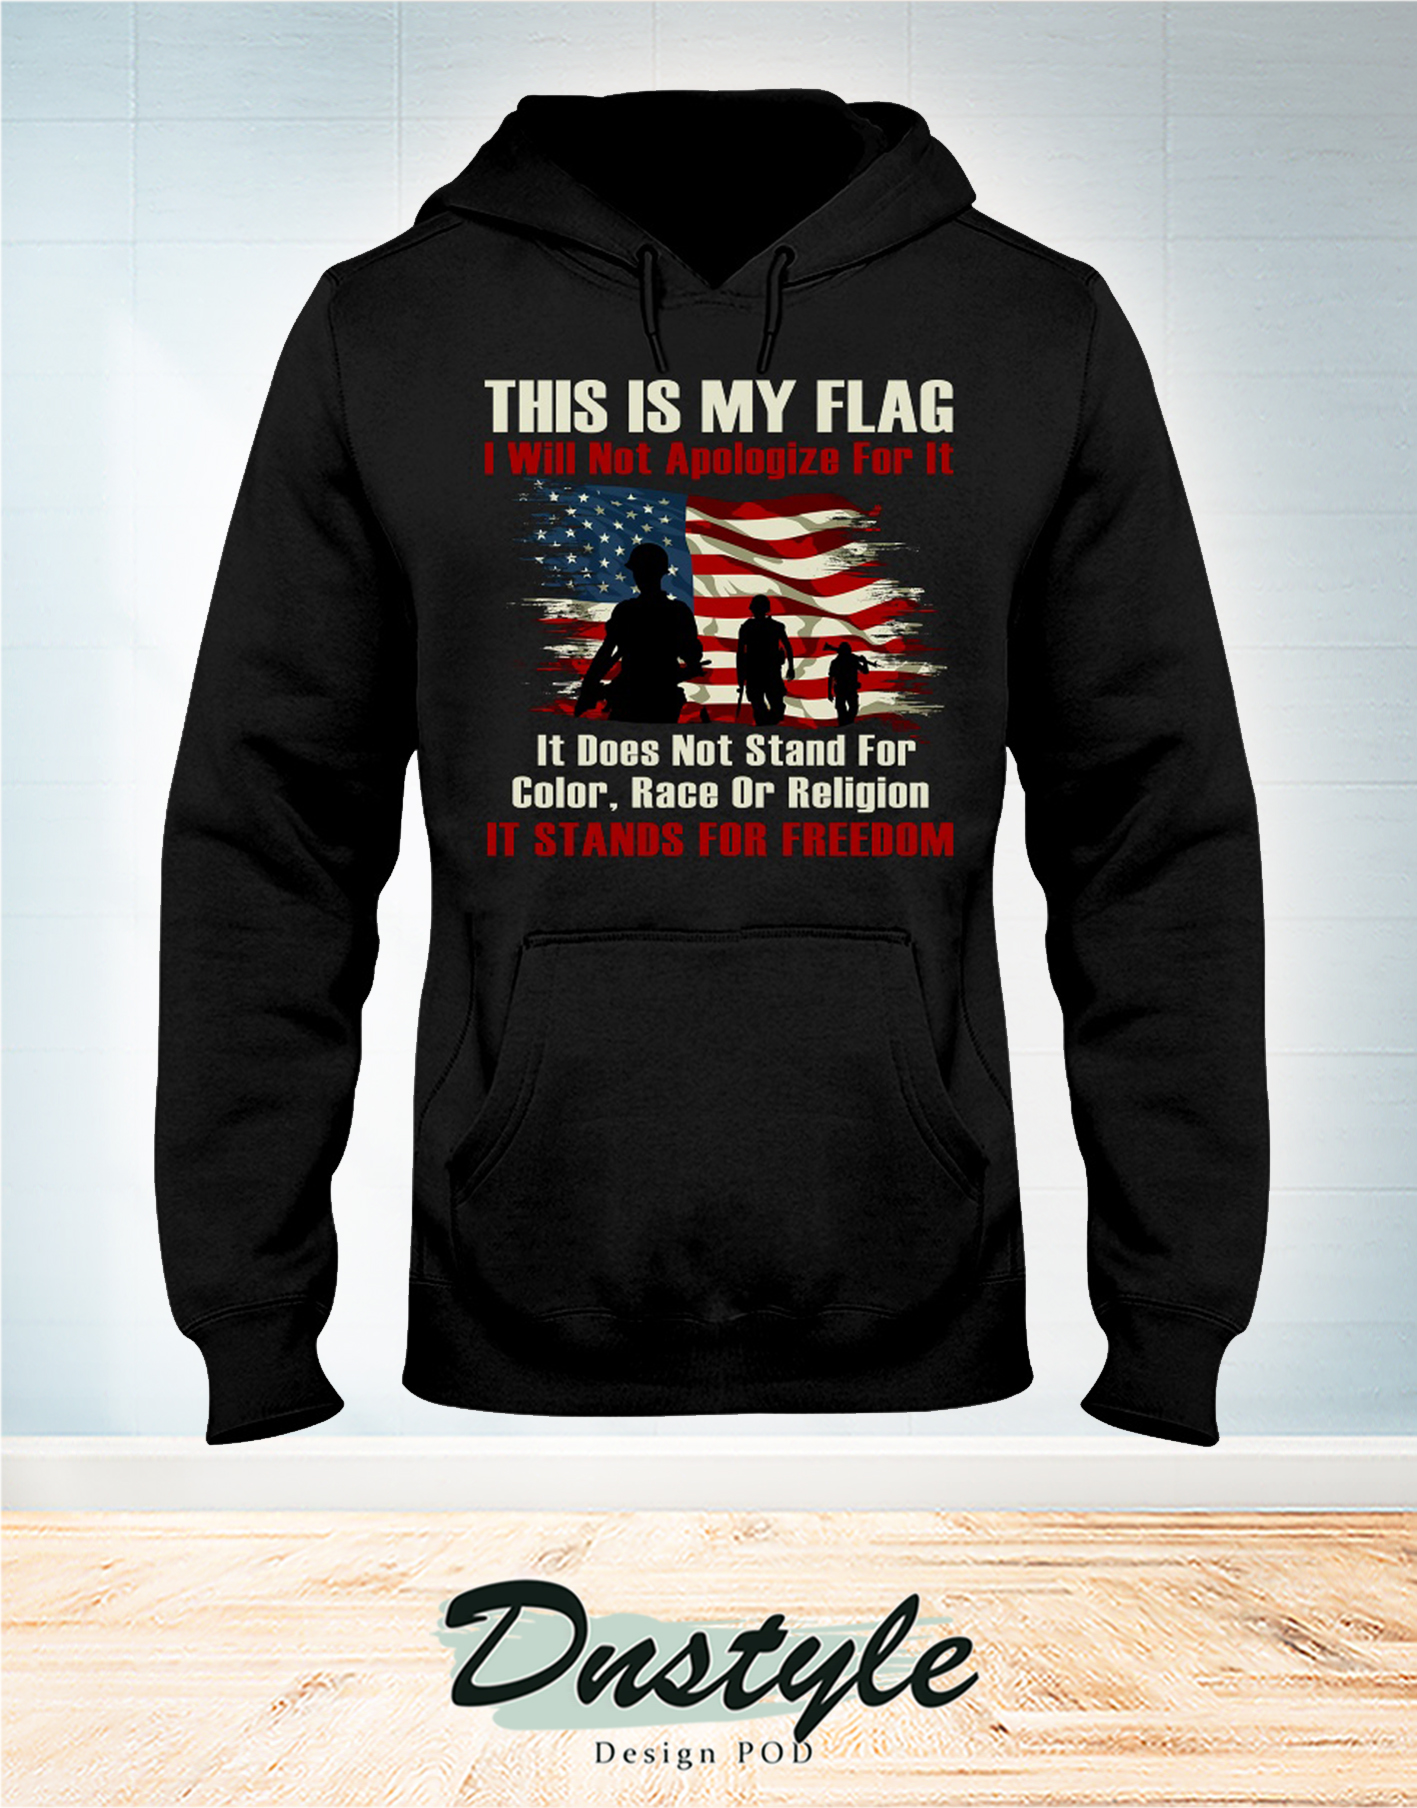 Veteran this is my flag I will not apologize for it hoodie